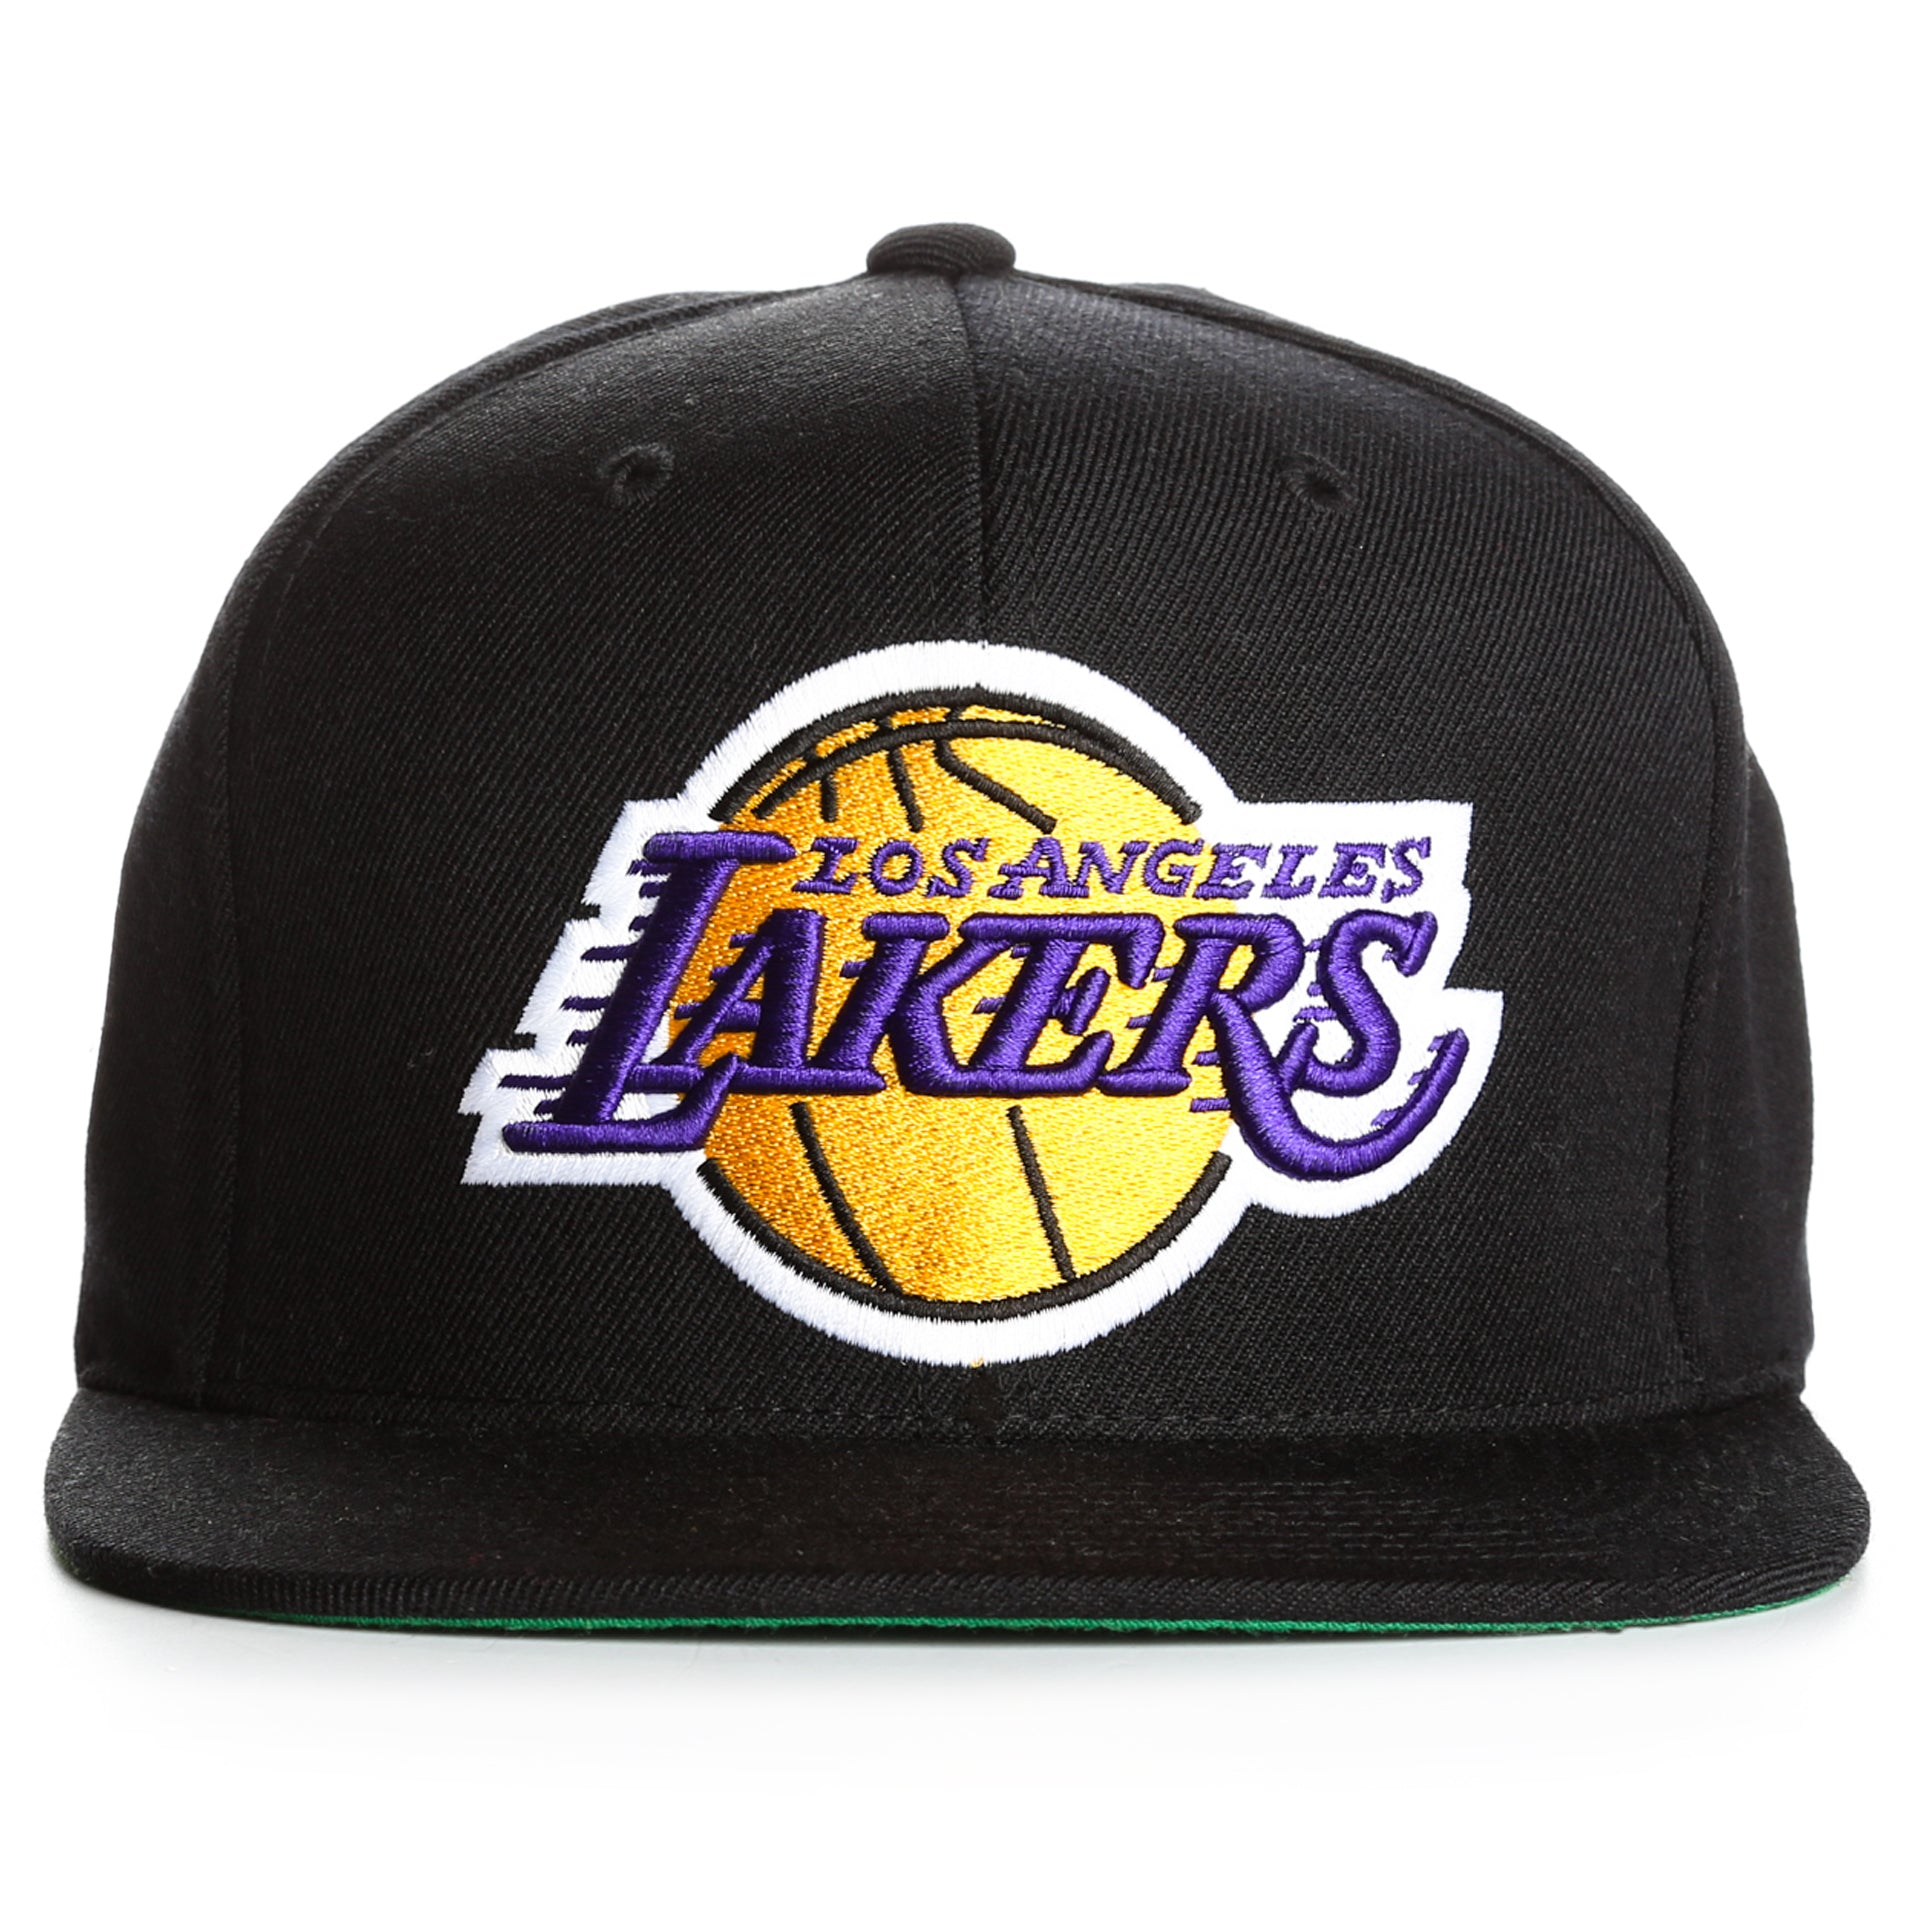 ed5d1a49d3 Mitchell and Ness Wool Solid LA Lakers Snapback - Black - New Star